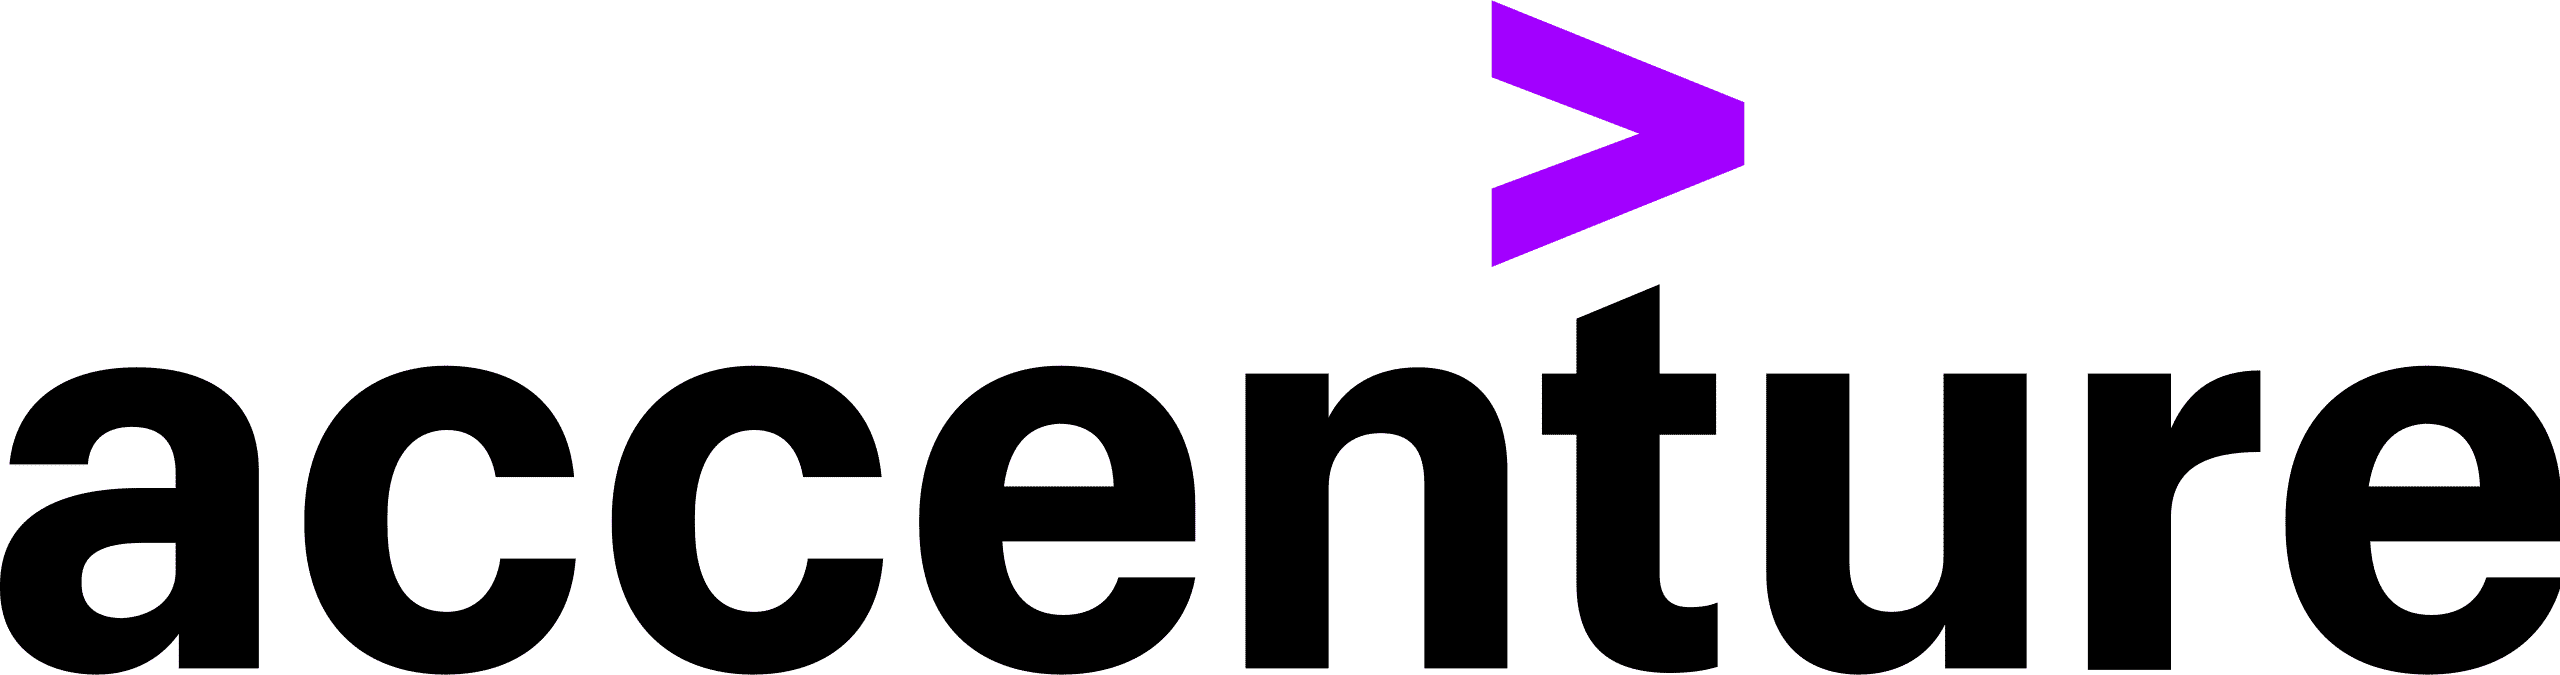 The logo for Accenture